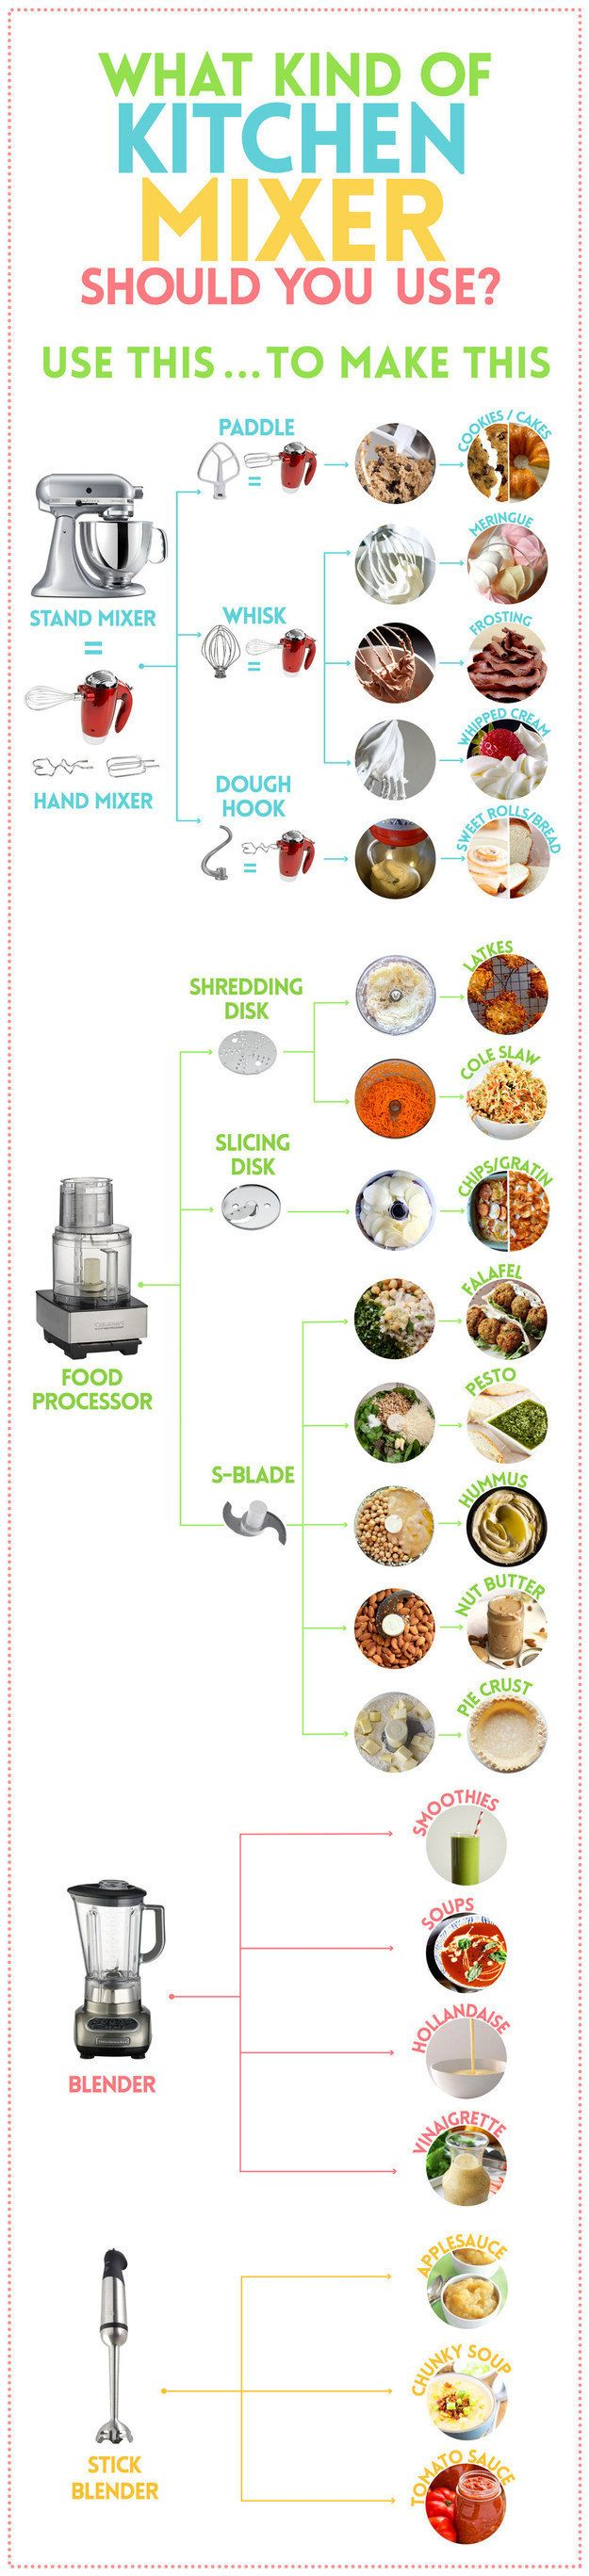 27 Diagrams That Make Cooking So Much Easier - Imgur